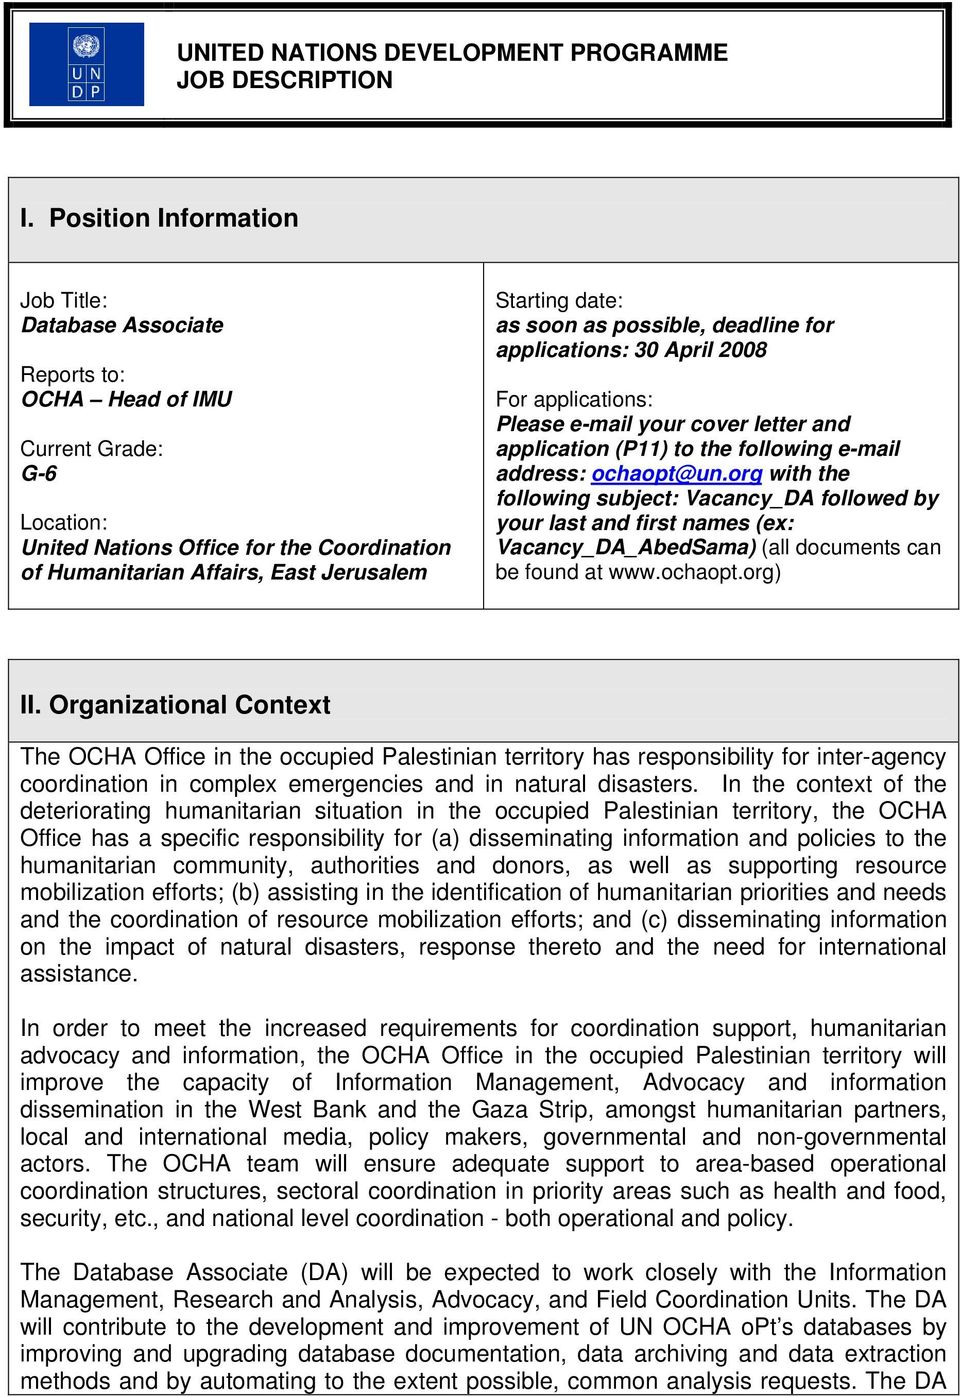 Starting date: as soon as possible, deadline for applications: 30 April 2008 For applications: Please e-mail your cover letter and application (P11) to the following e-mail address: ochaopt@un.